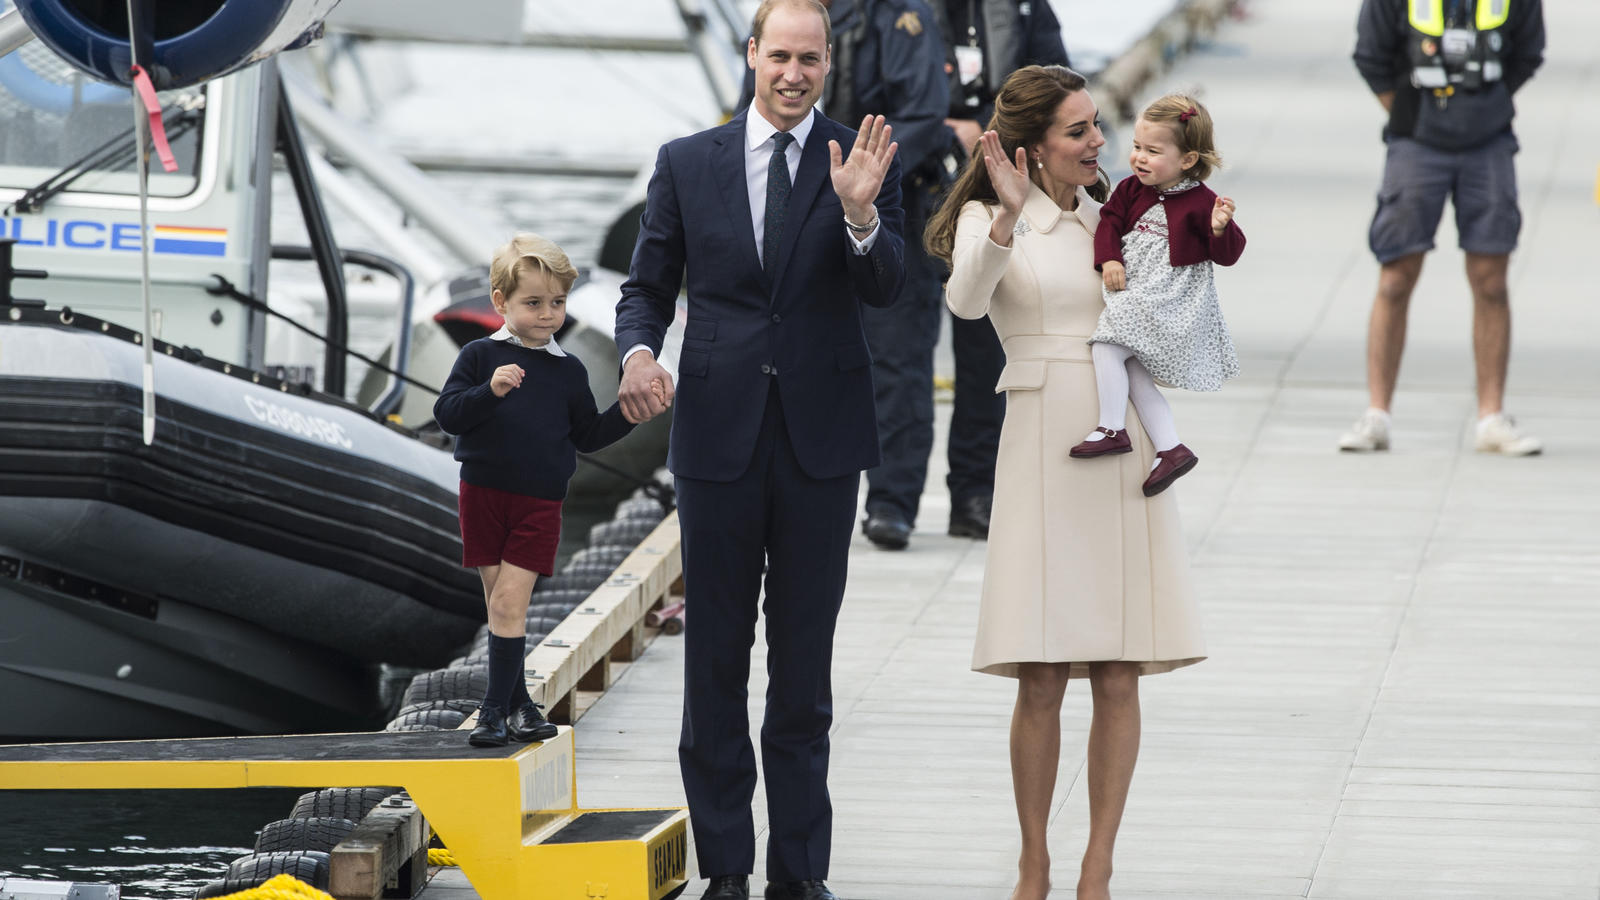 The Duchess of Cambridge, Princess Charlotte, Prince George and the Duke of Cambridge end their Canadian Royal Tour with an official farewell at Victoria Harbour AirportFeaturing: Prince George, Duke of Cambridge, Duchess of Cambridge, Princess Charl